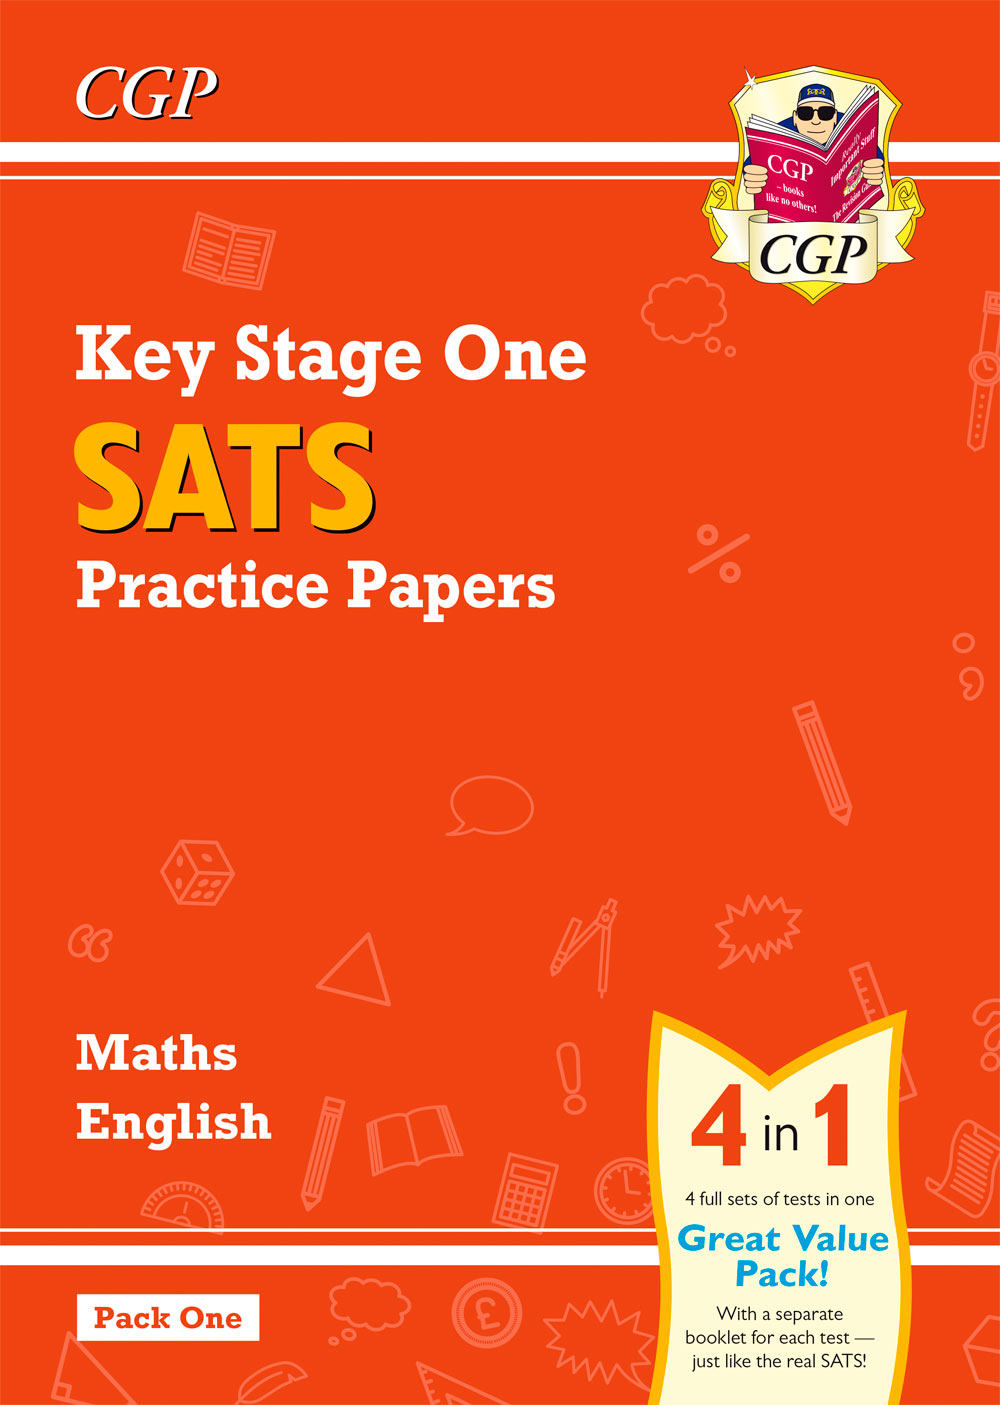 MEB16 - New KS1 Maths and English SATS Practice Papers Pack (for the 2020 tests) - Pack 1